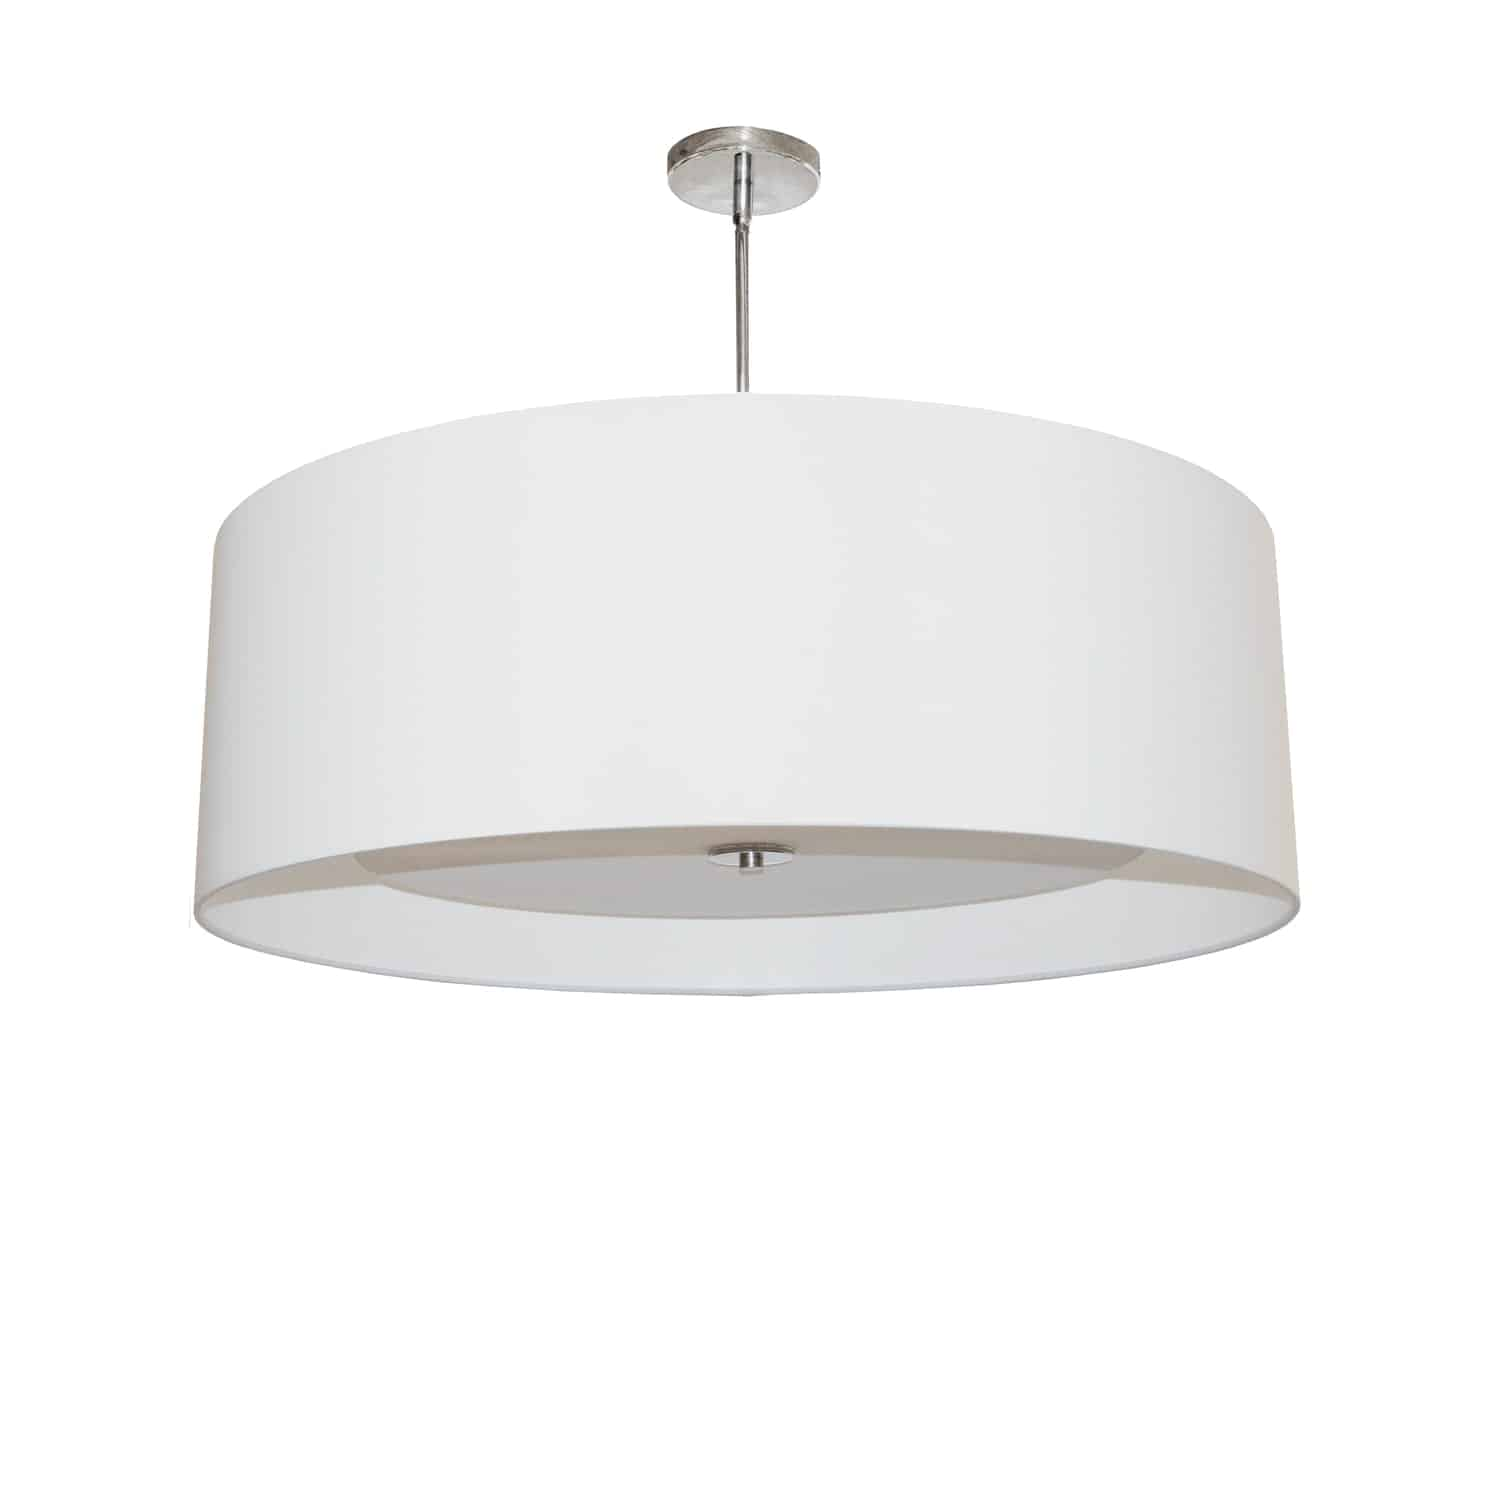 4 Light Helena Pendant Polished Chrome White with White Diffuser